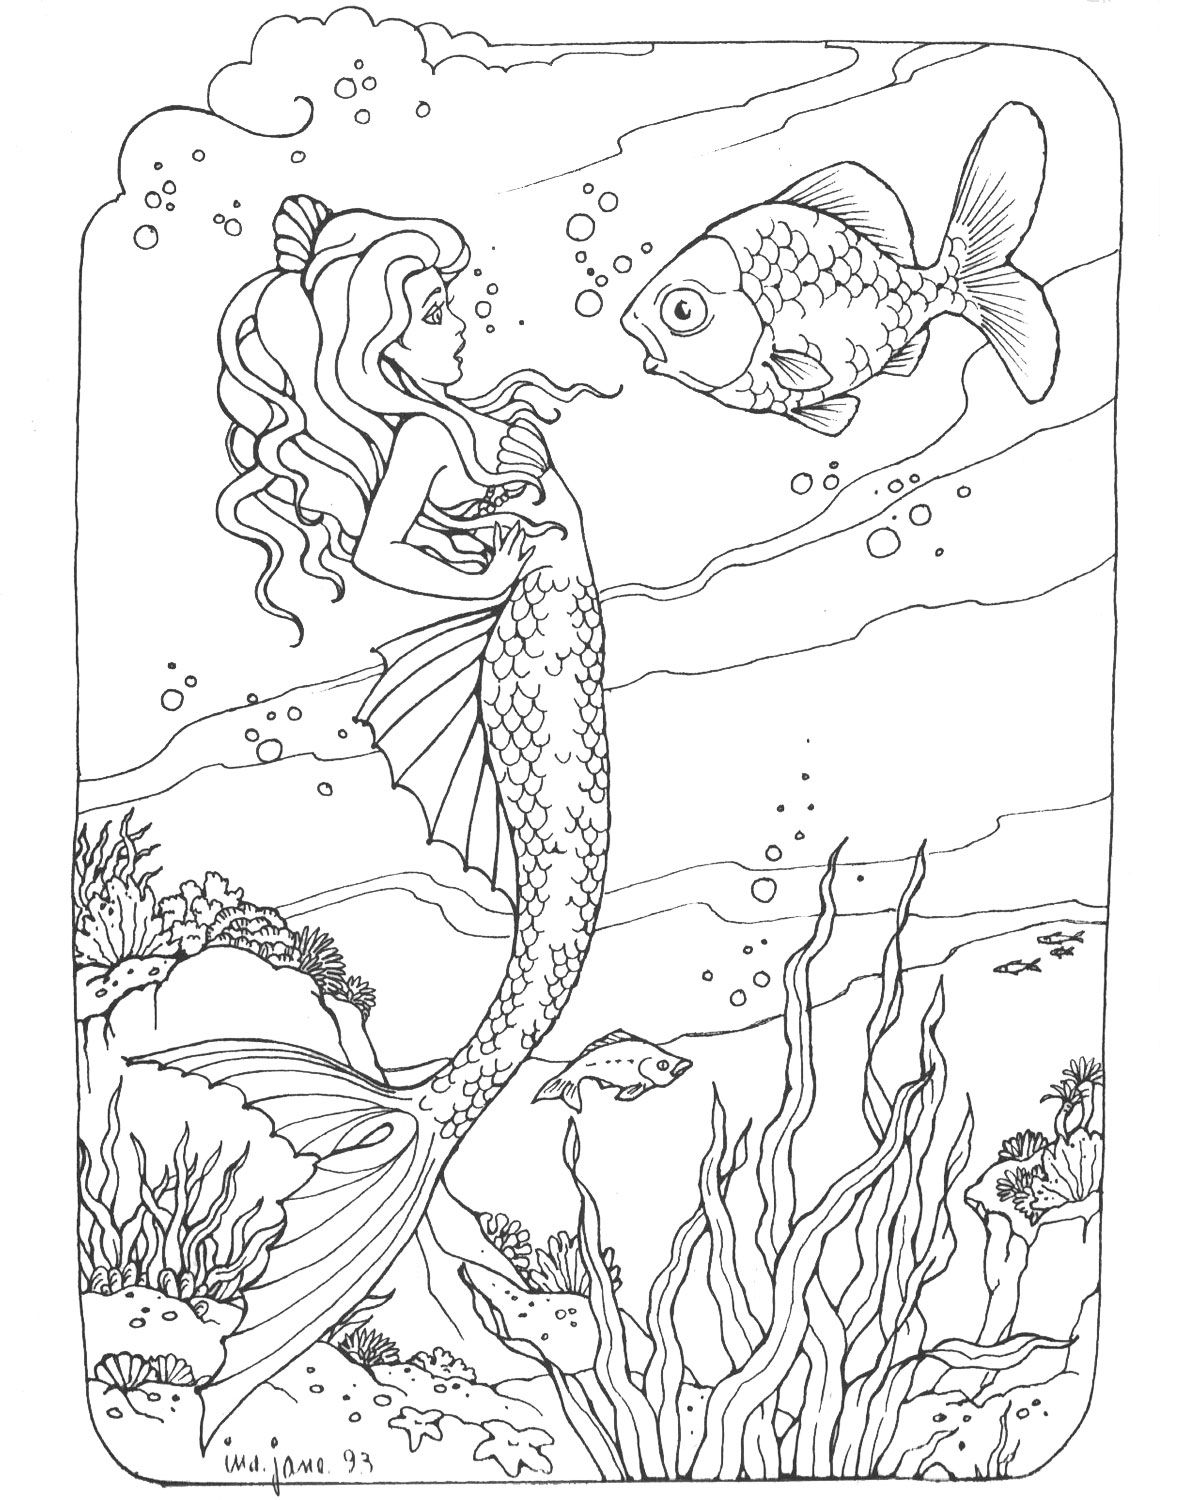 mermaid-coloring-page-0003-q1